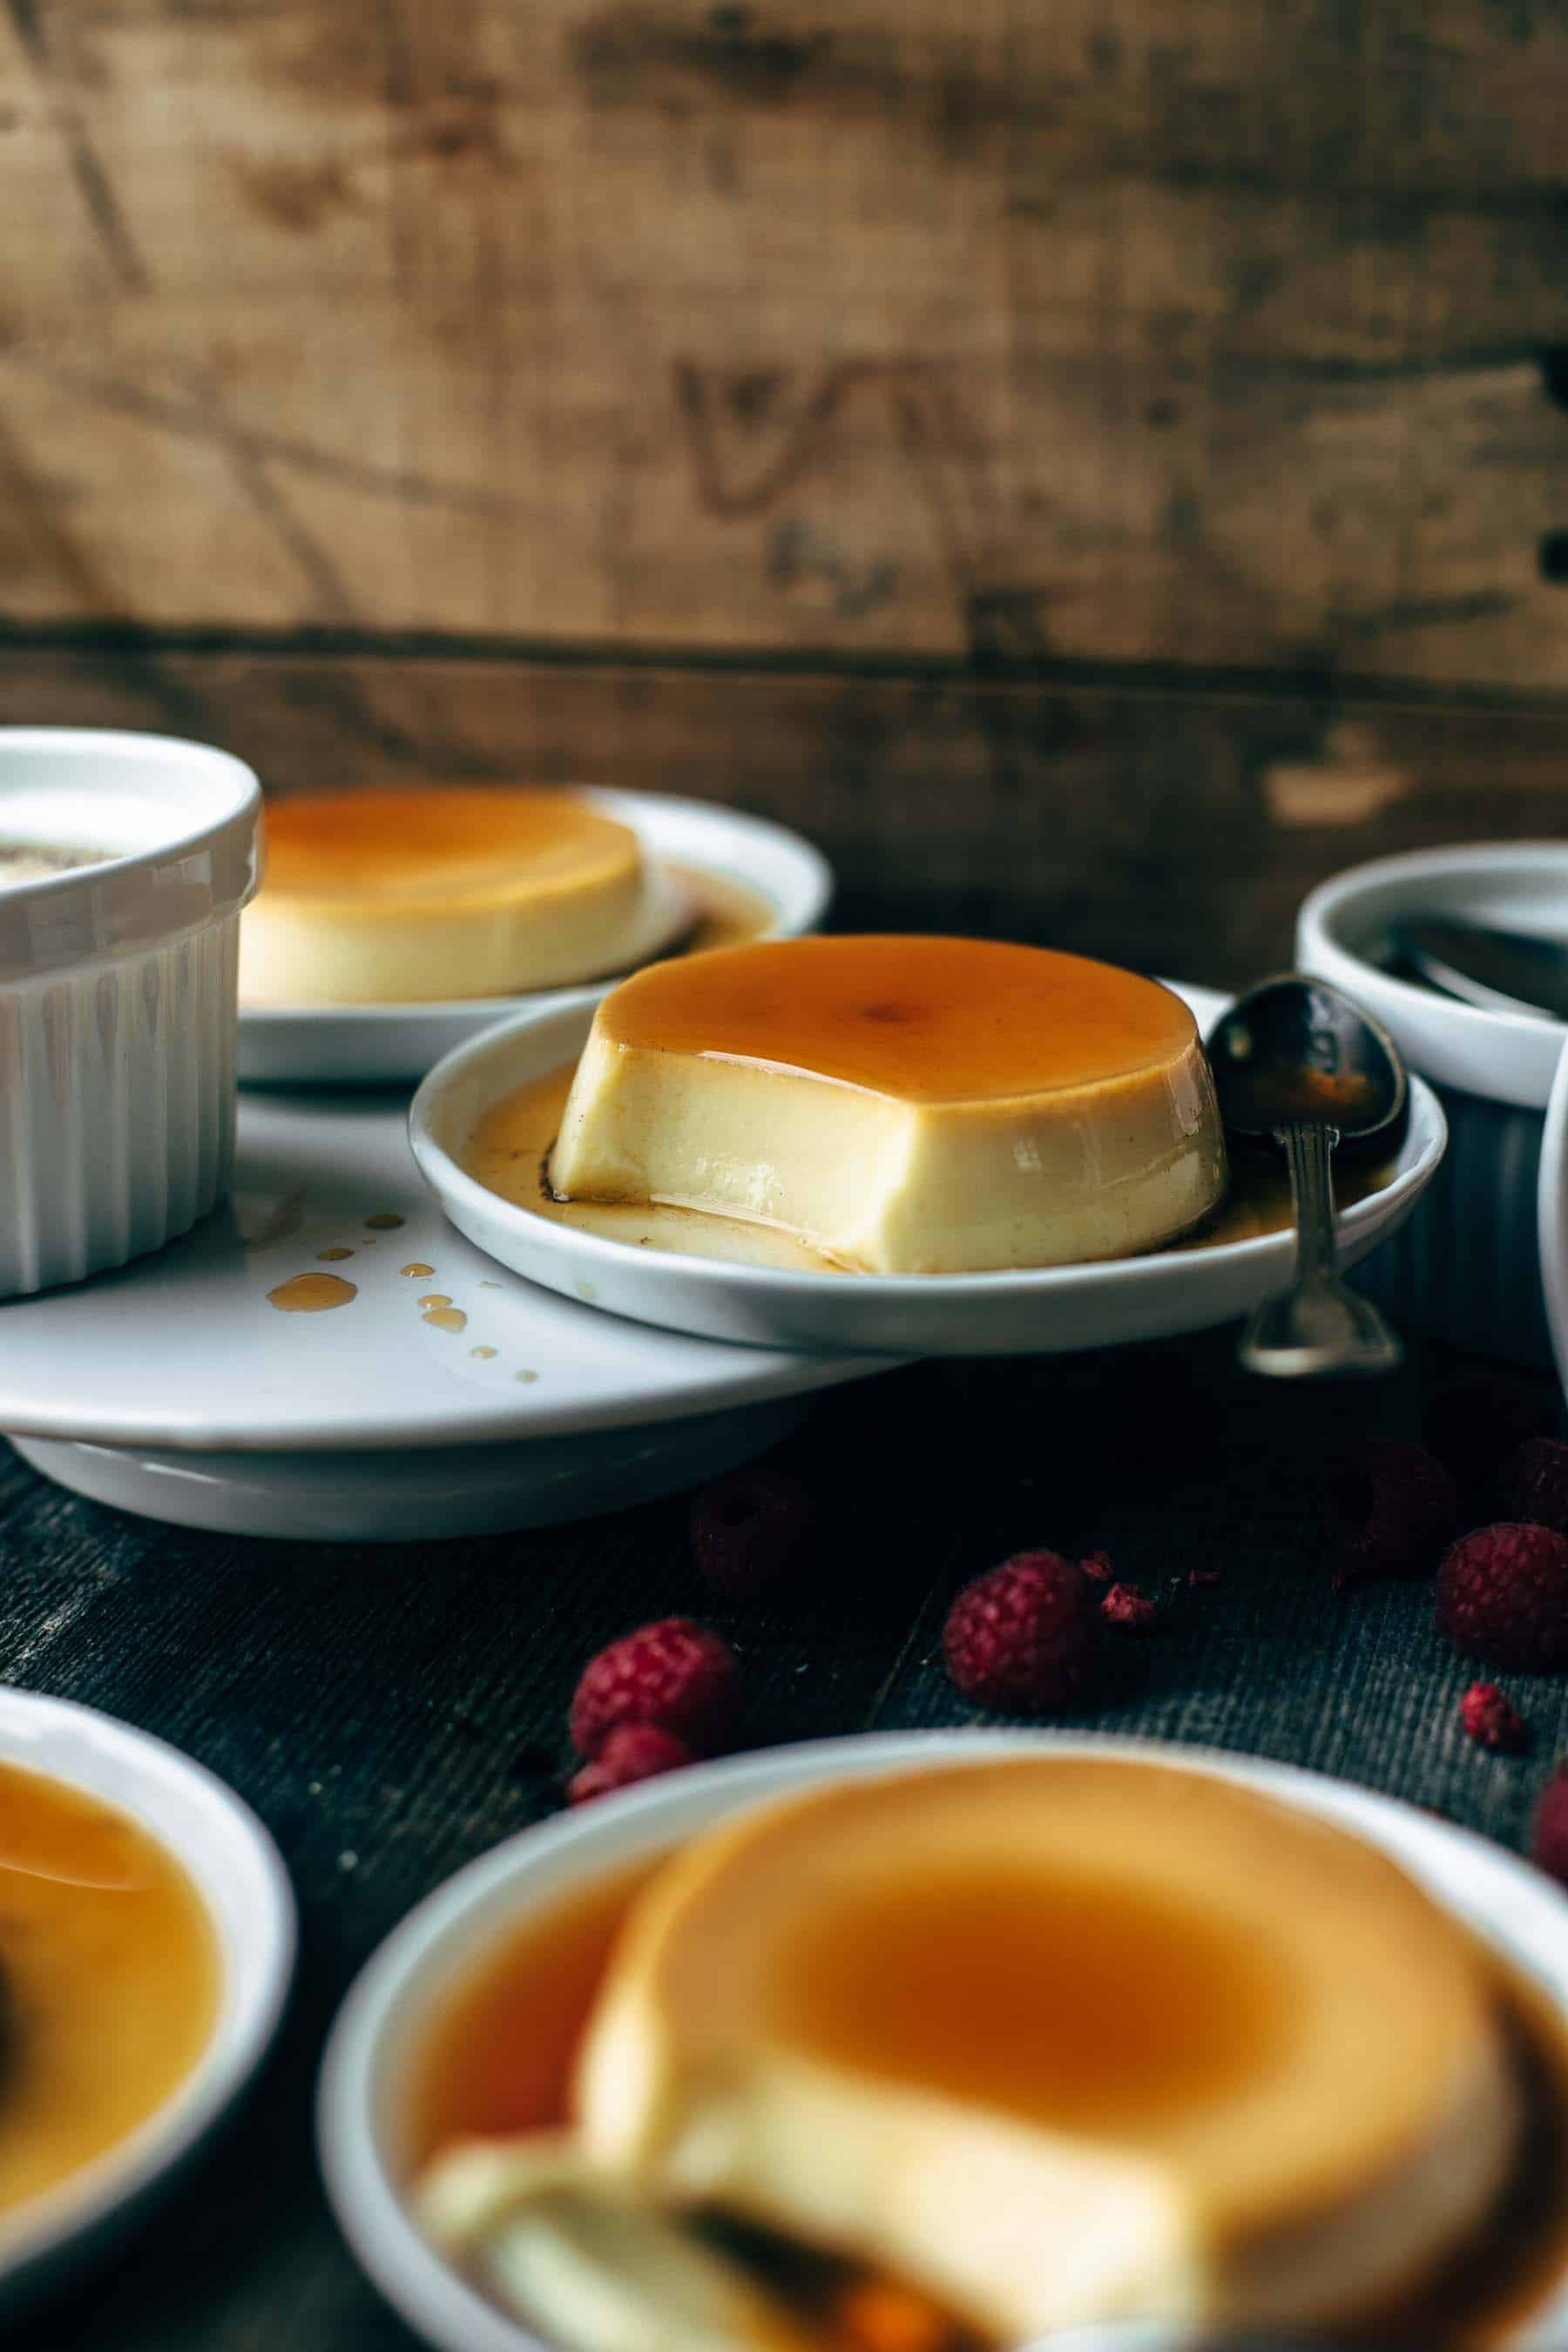 Picture of Spanish flans on white plates with spoons